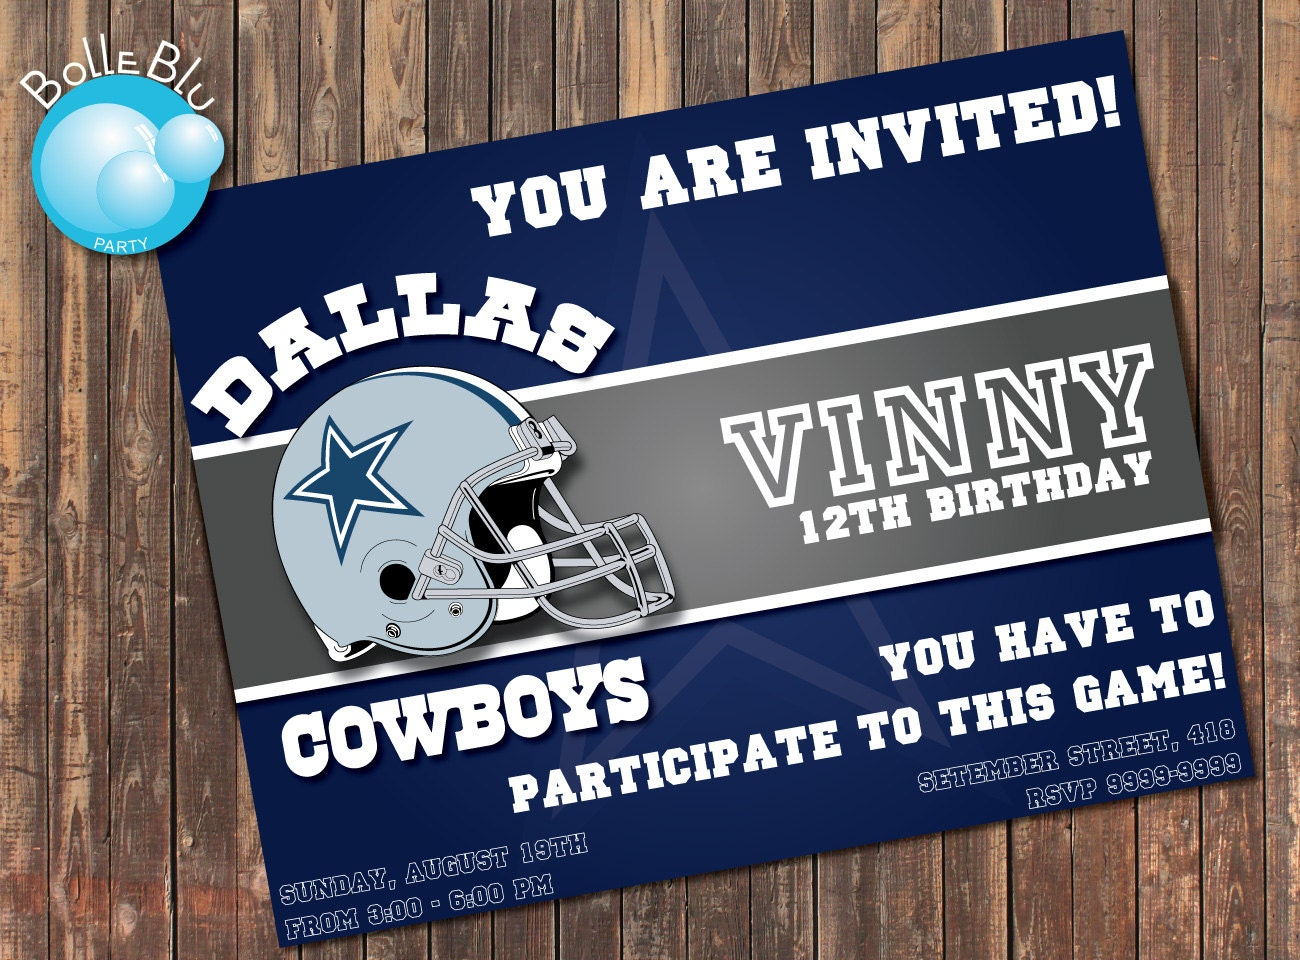 Dallas Cowboy Invitations Free Printable Invitation Template - Cowboy birthday invitation template